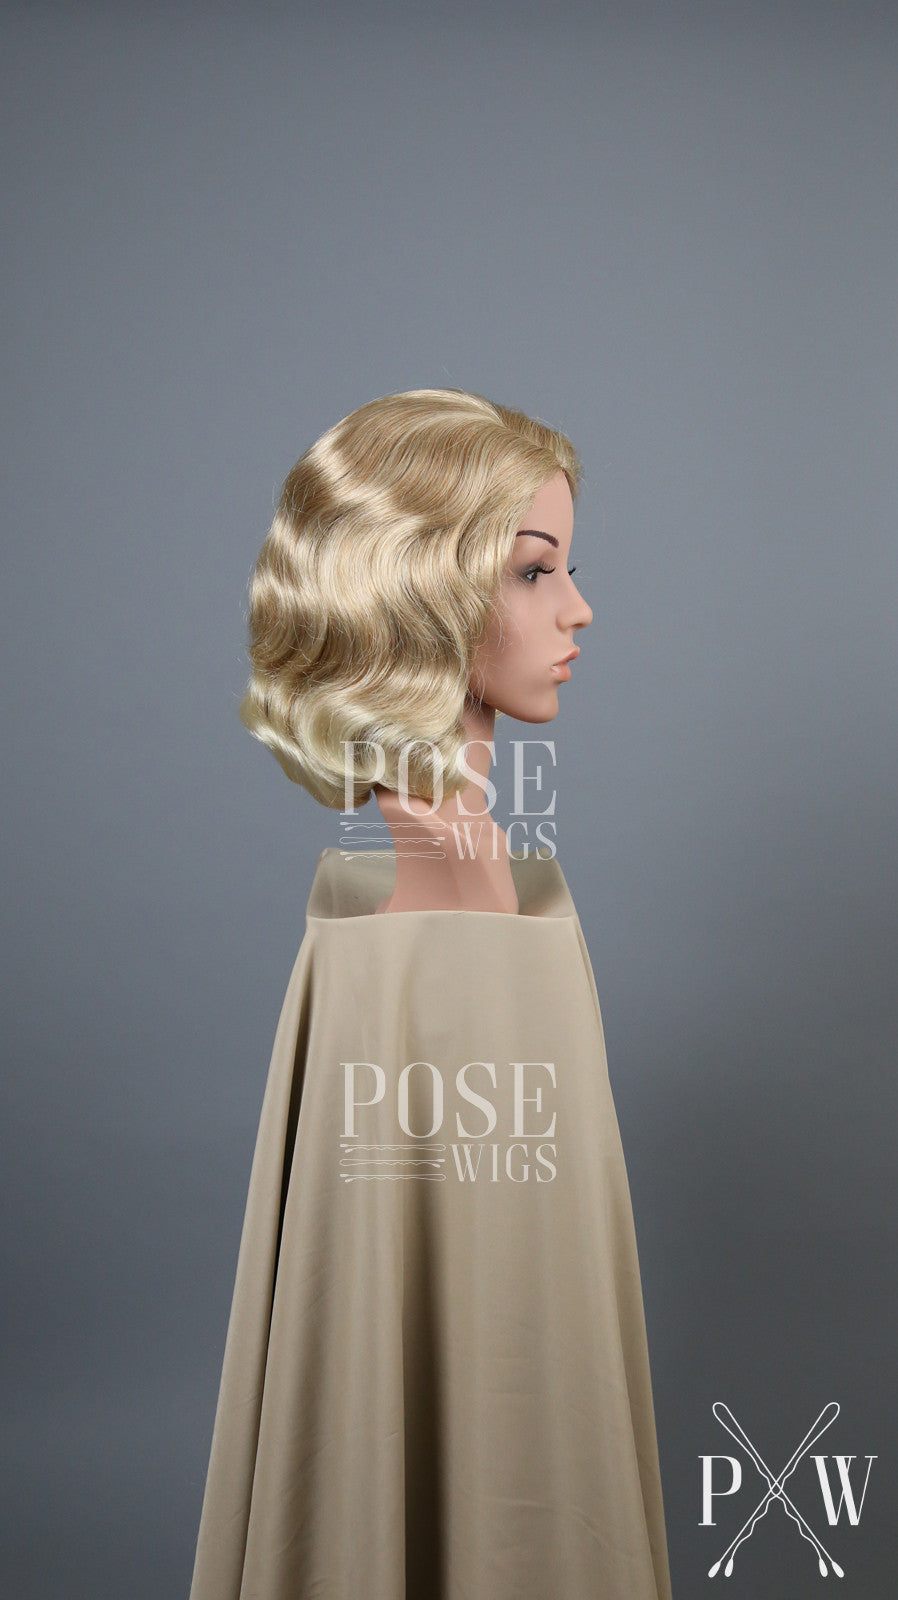 Strawberry Blonde Short Finger Wave Vintage Curls Costume Fashion Wig FETE91